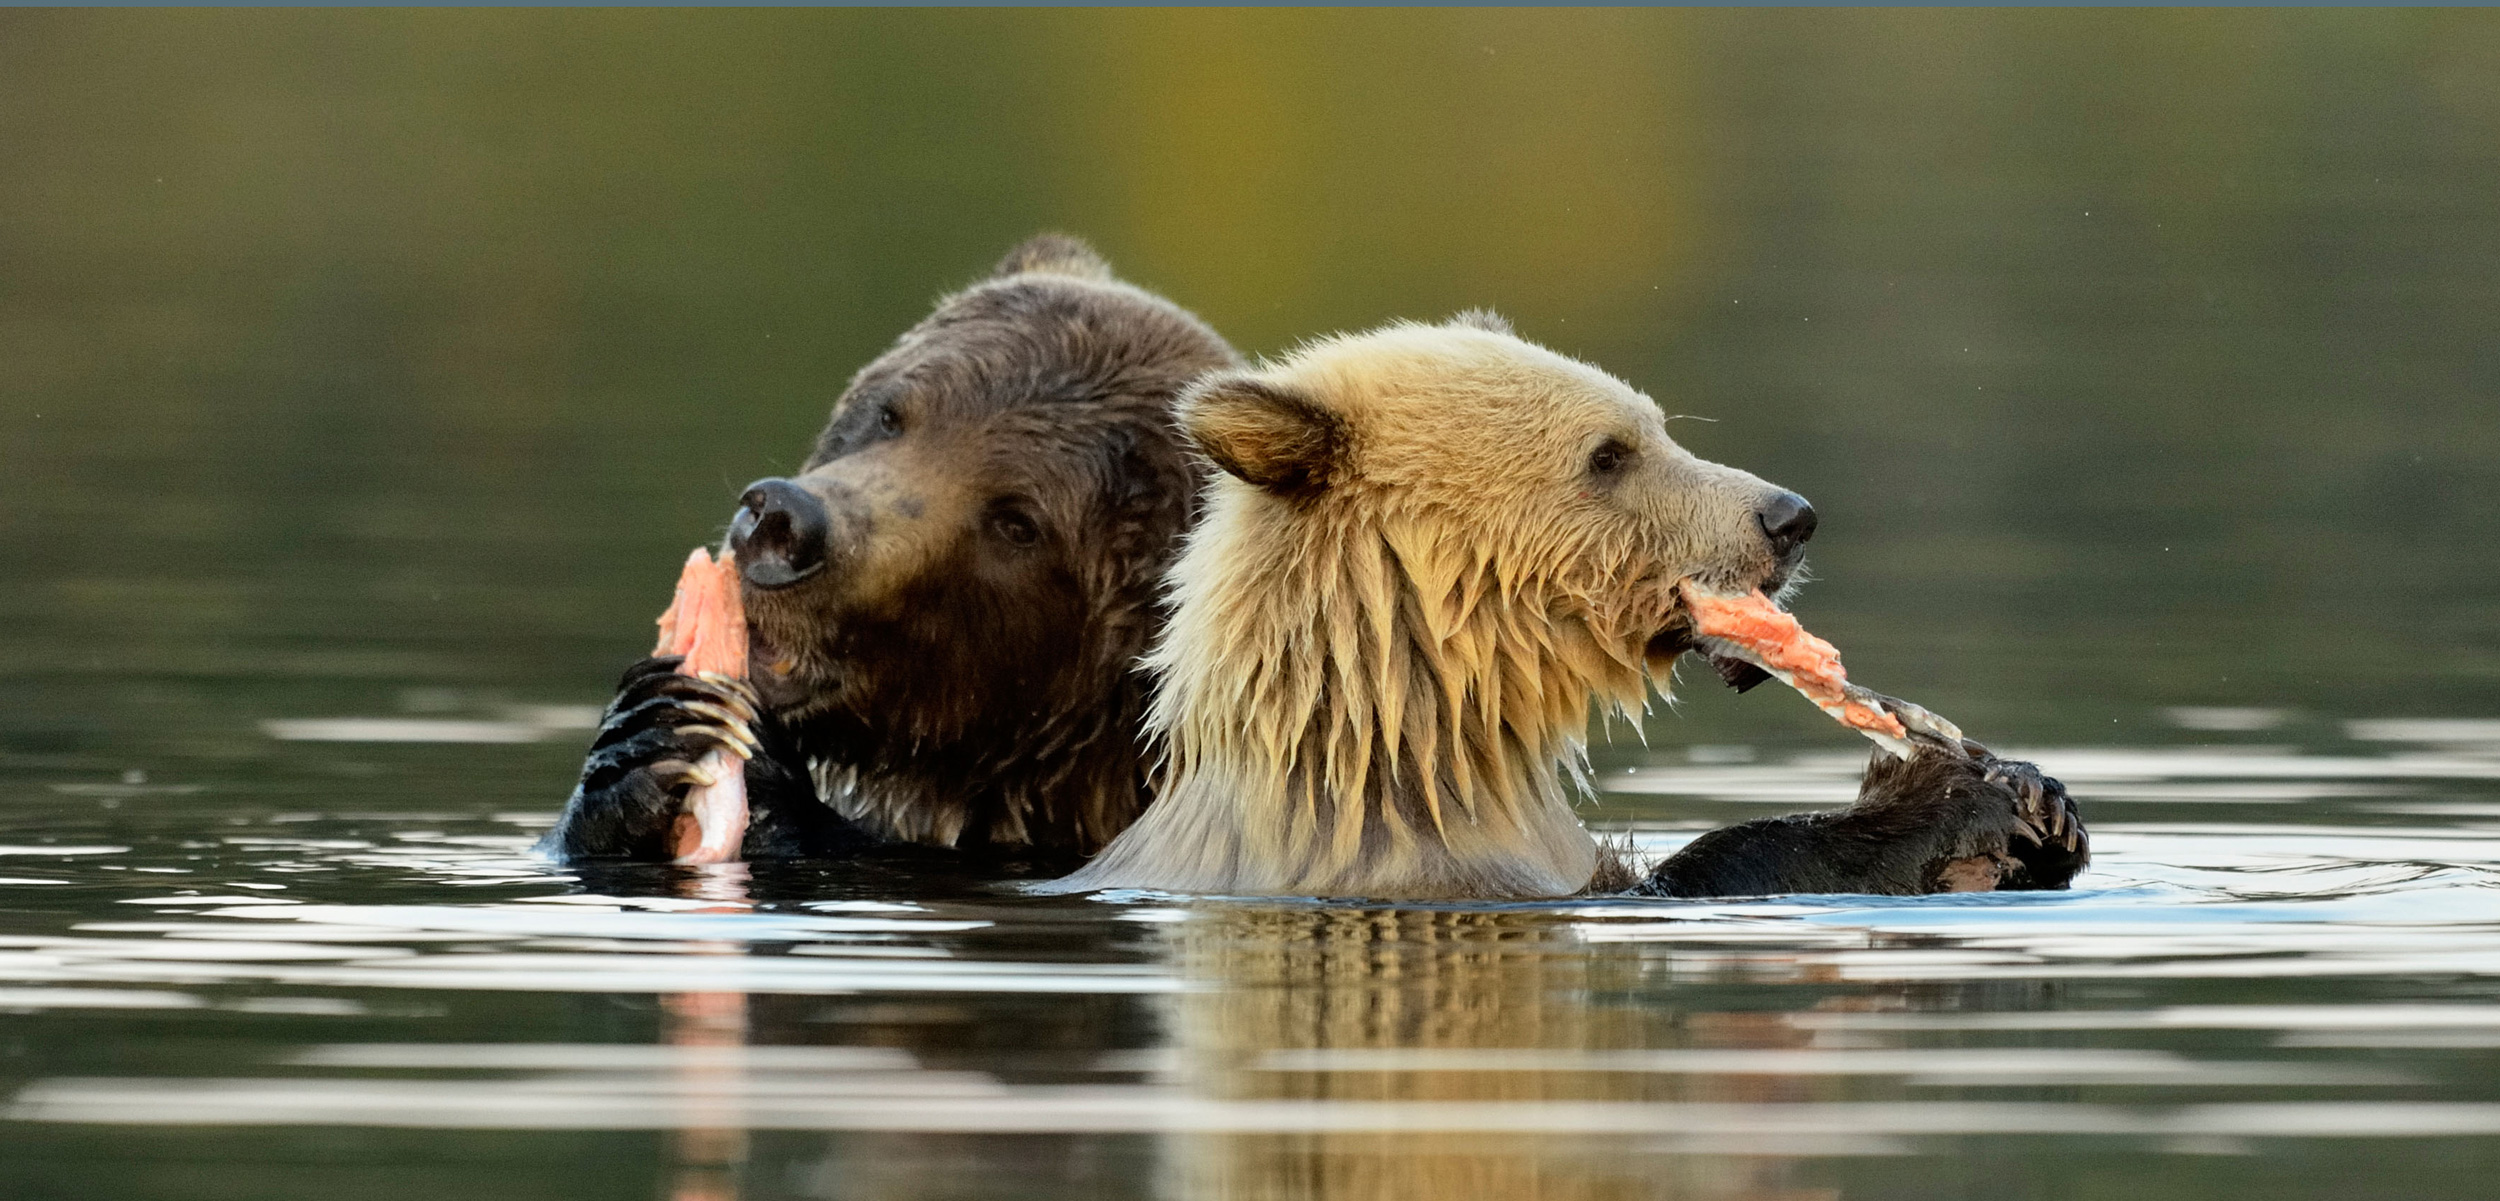 Across coastal British Columbia, and even far inland, bears rely on nutrient- and fat-rich salmon. Don Johnston_WC/Alamy Stock Photo